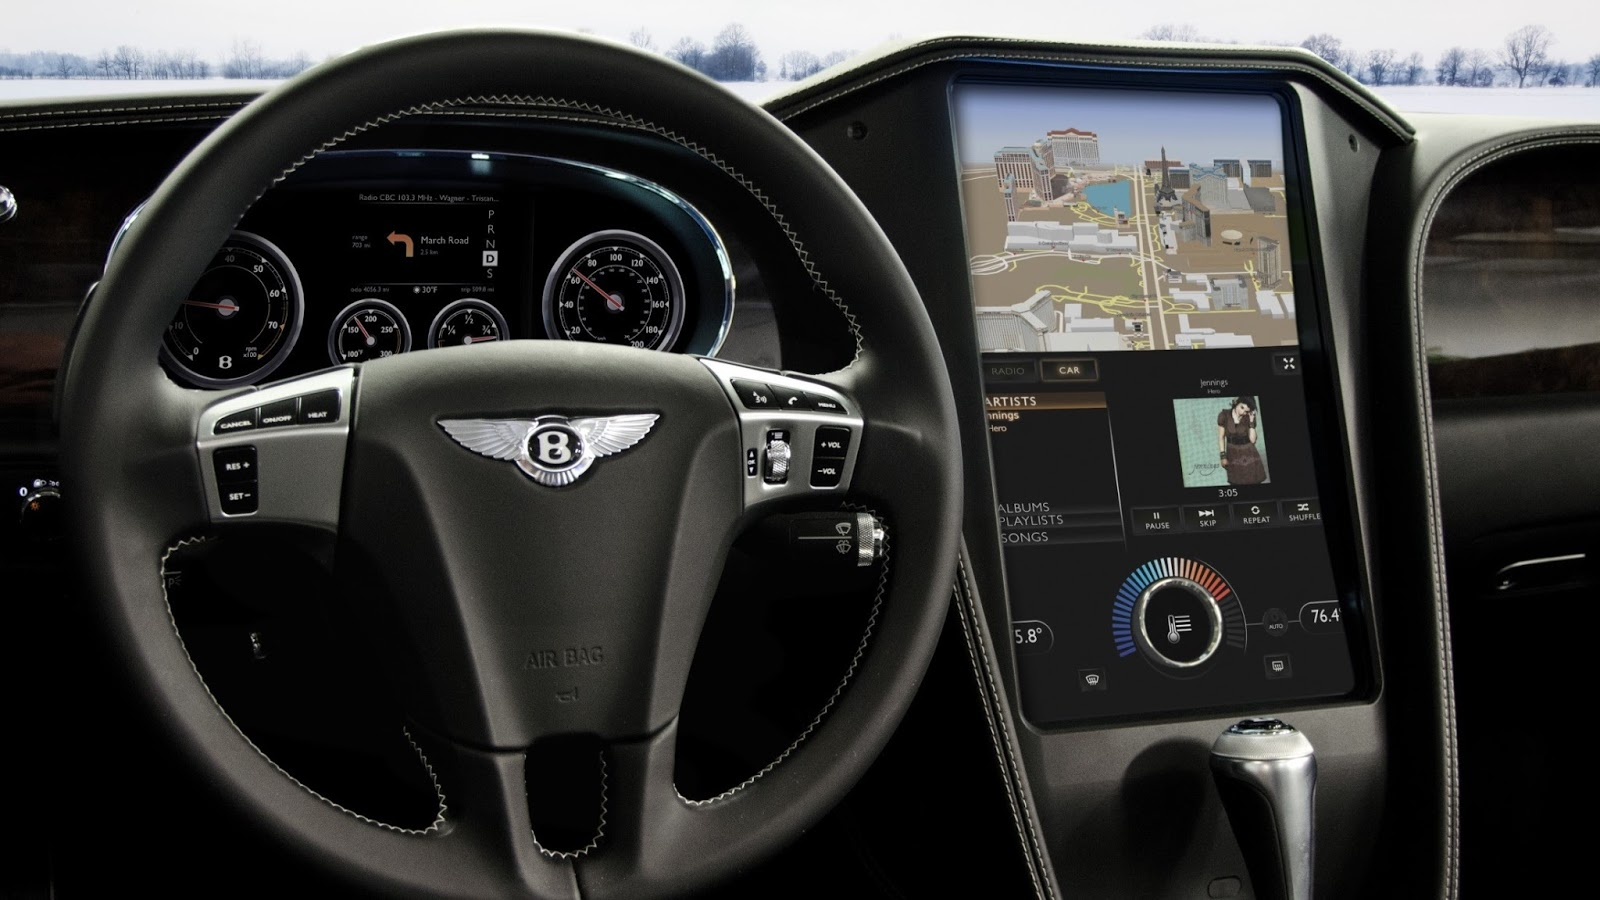 Loosely defined the digital cockpit combines an automobile s digital instrument clusters and infotainment systems into a more unified user experience